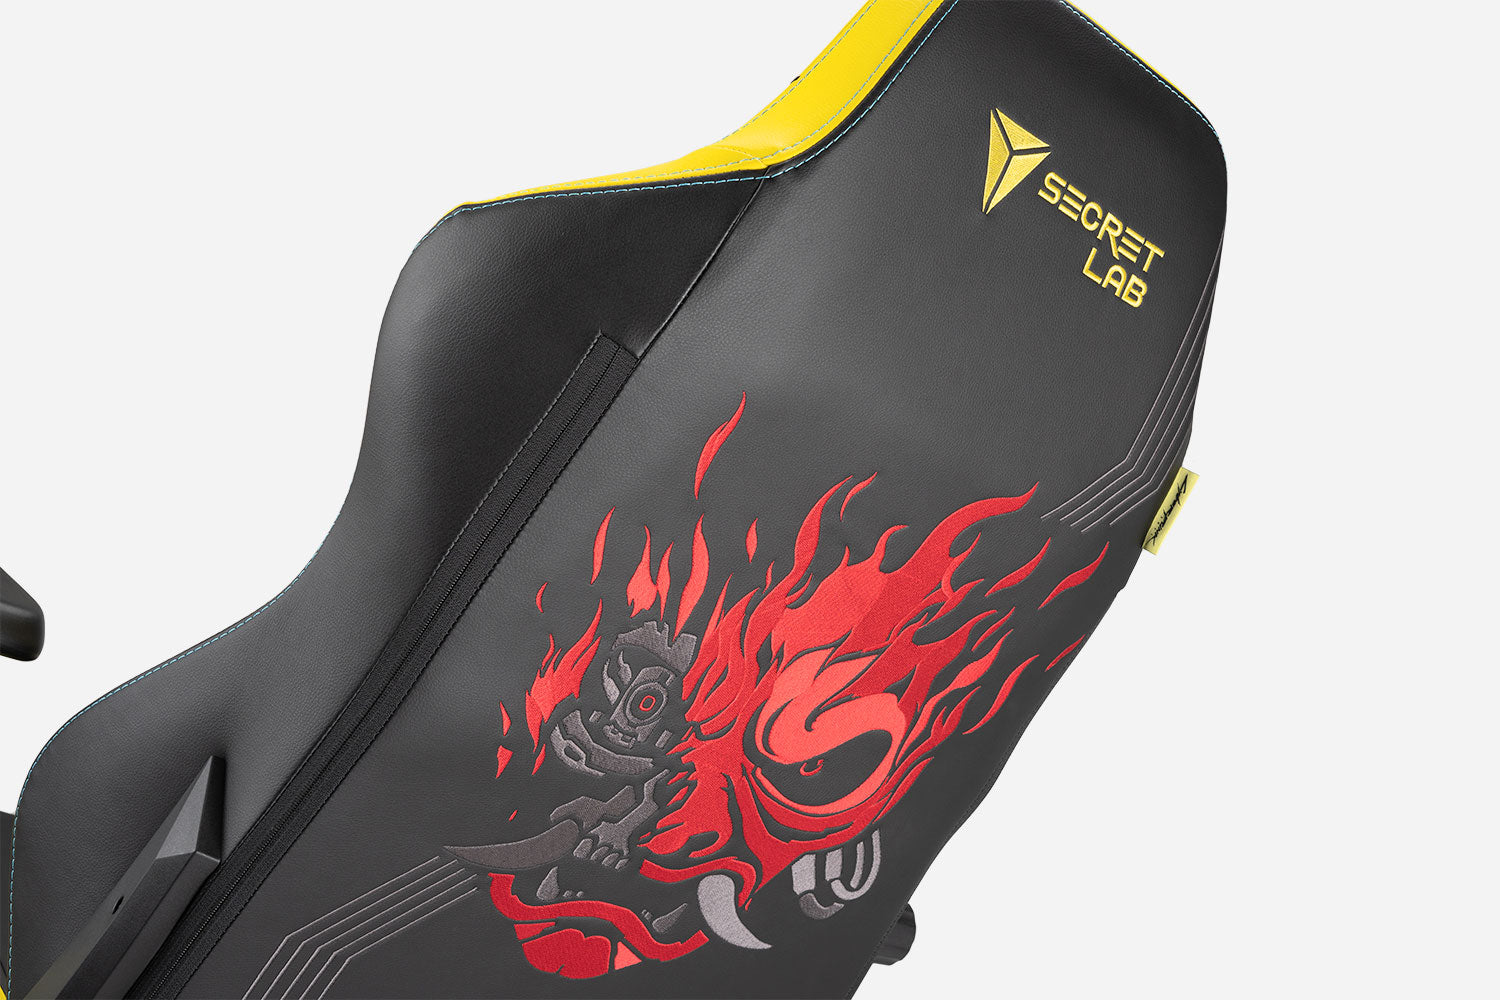 Angled detail view of back of Secretlab TITAN Cyberpunk 2077 edition gaming chair